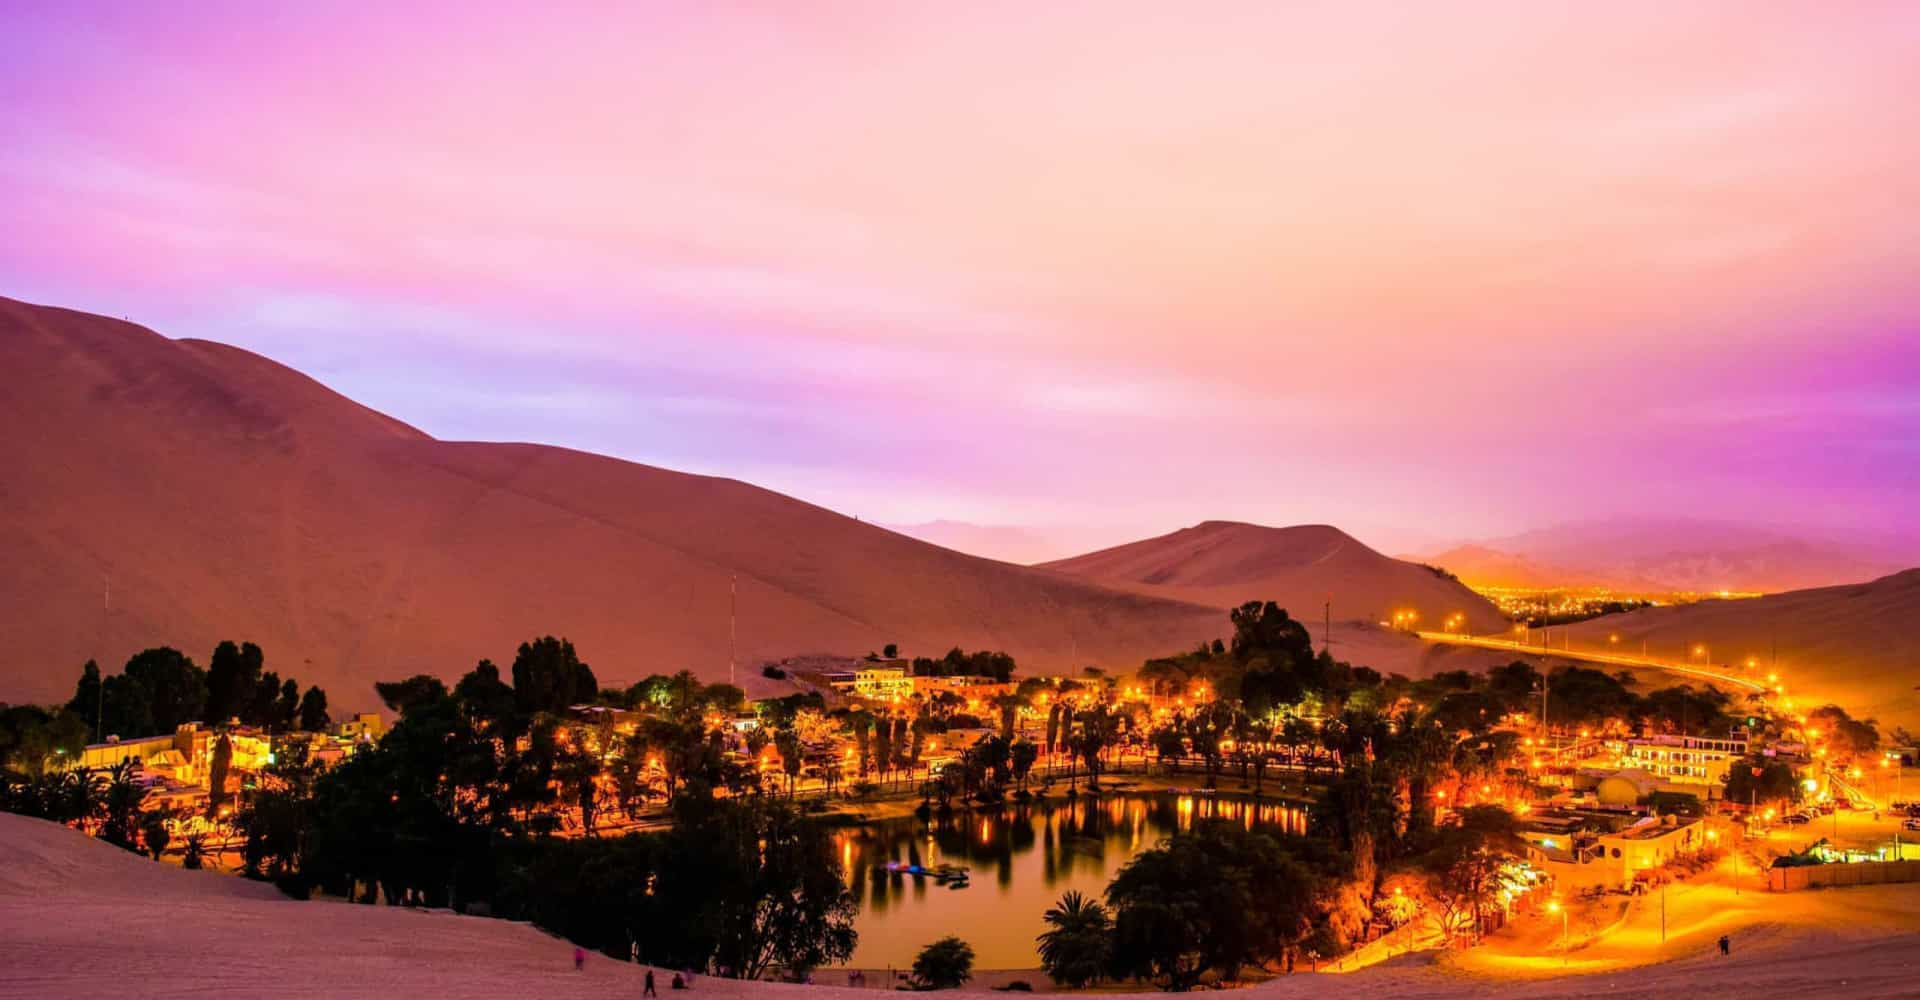 Huacachina Lagoon: visit the last oasis of the Americas